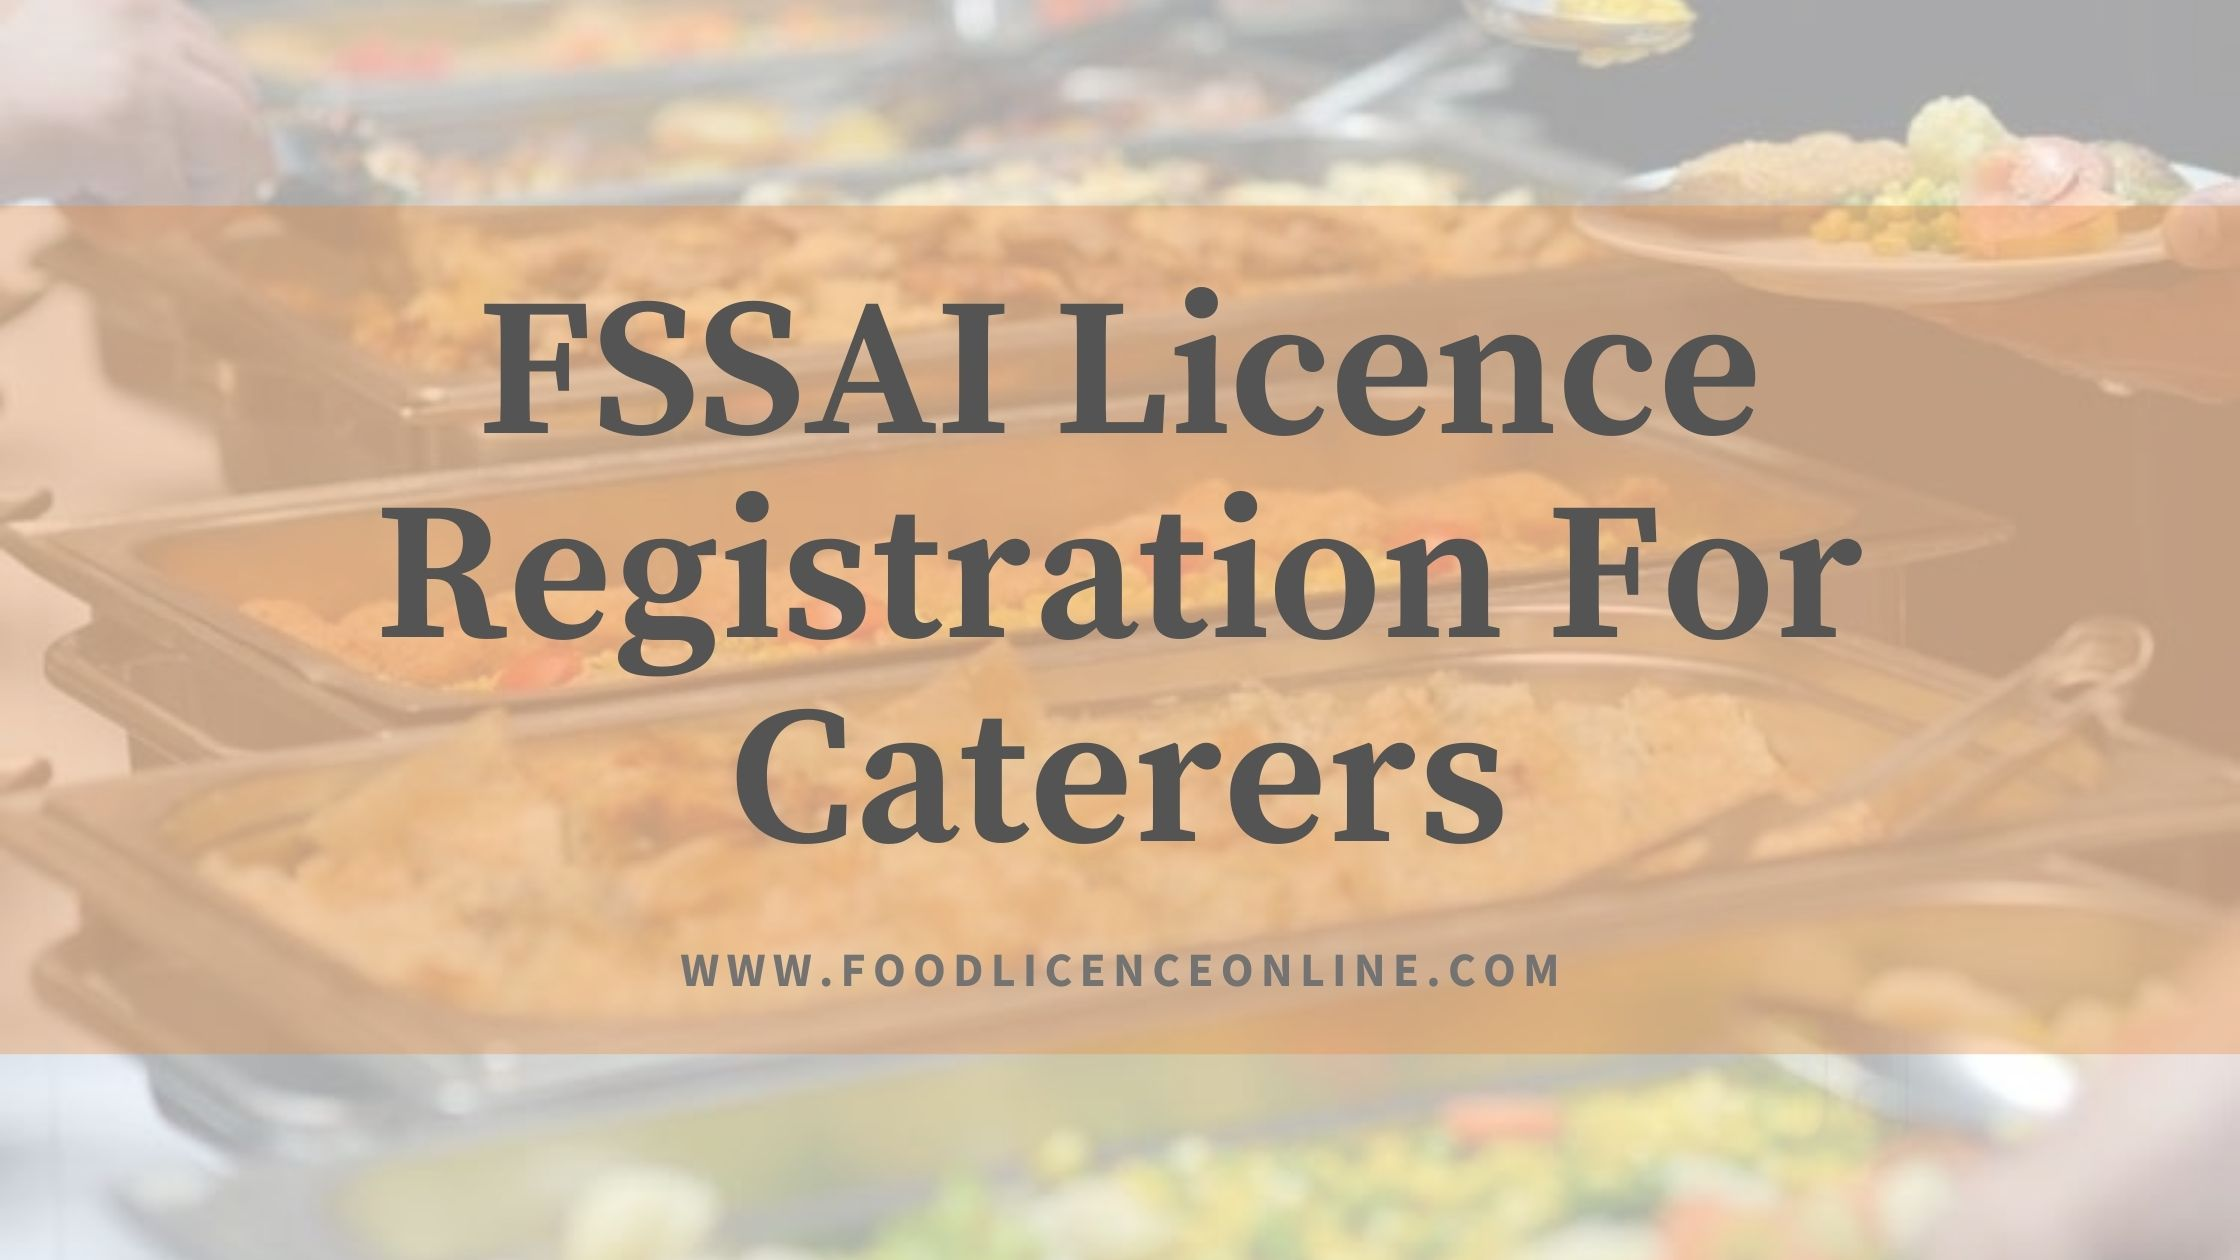 FSSAI Licence Registration For Caterers